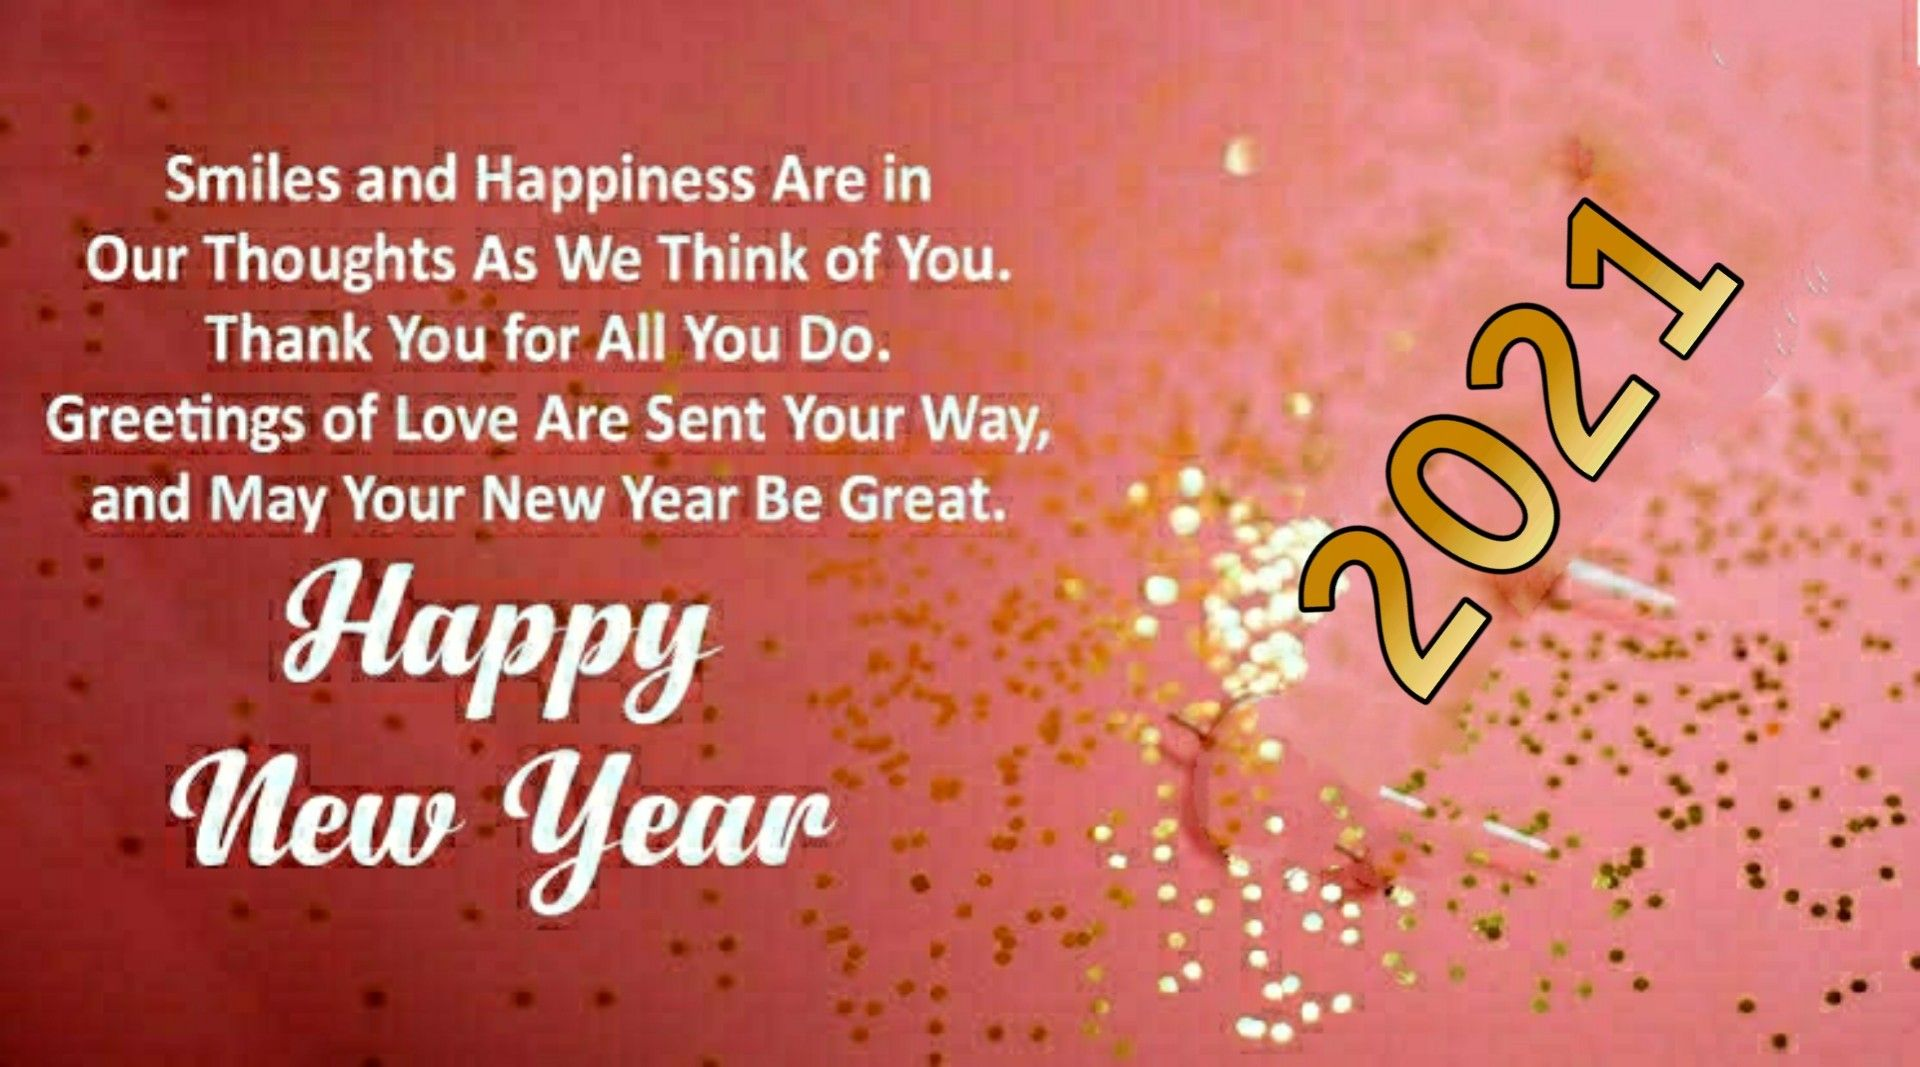 Happy New Year 2021 Quotes Wishes In English In 2020 Happy New Year Sms Happy New Year Wishes Wishes For Friends